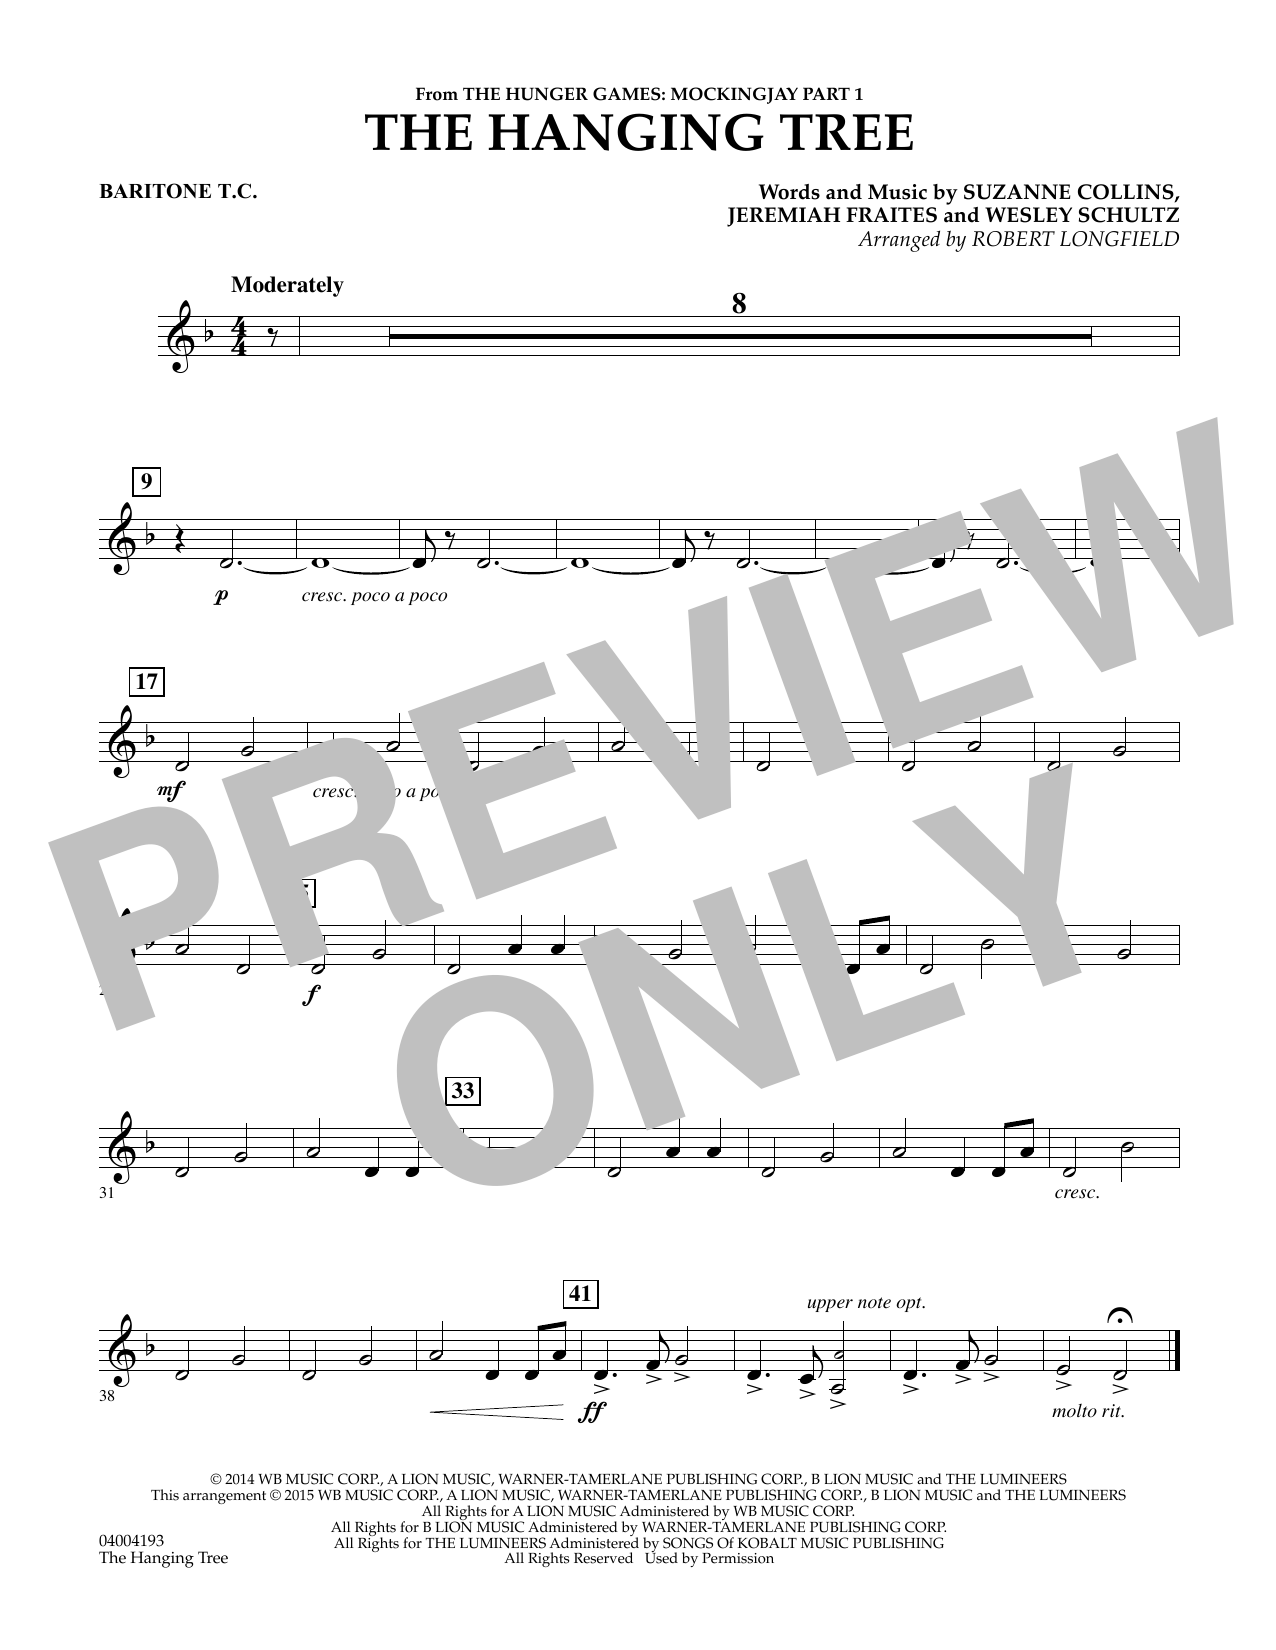 Robert Longfield The Hanging Tree (from The Hunger Games: Mockingjay Part 1) - Baritone T.C. sheet music notes and chords. Download Printable PDF.